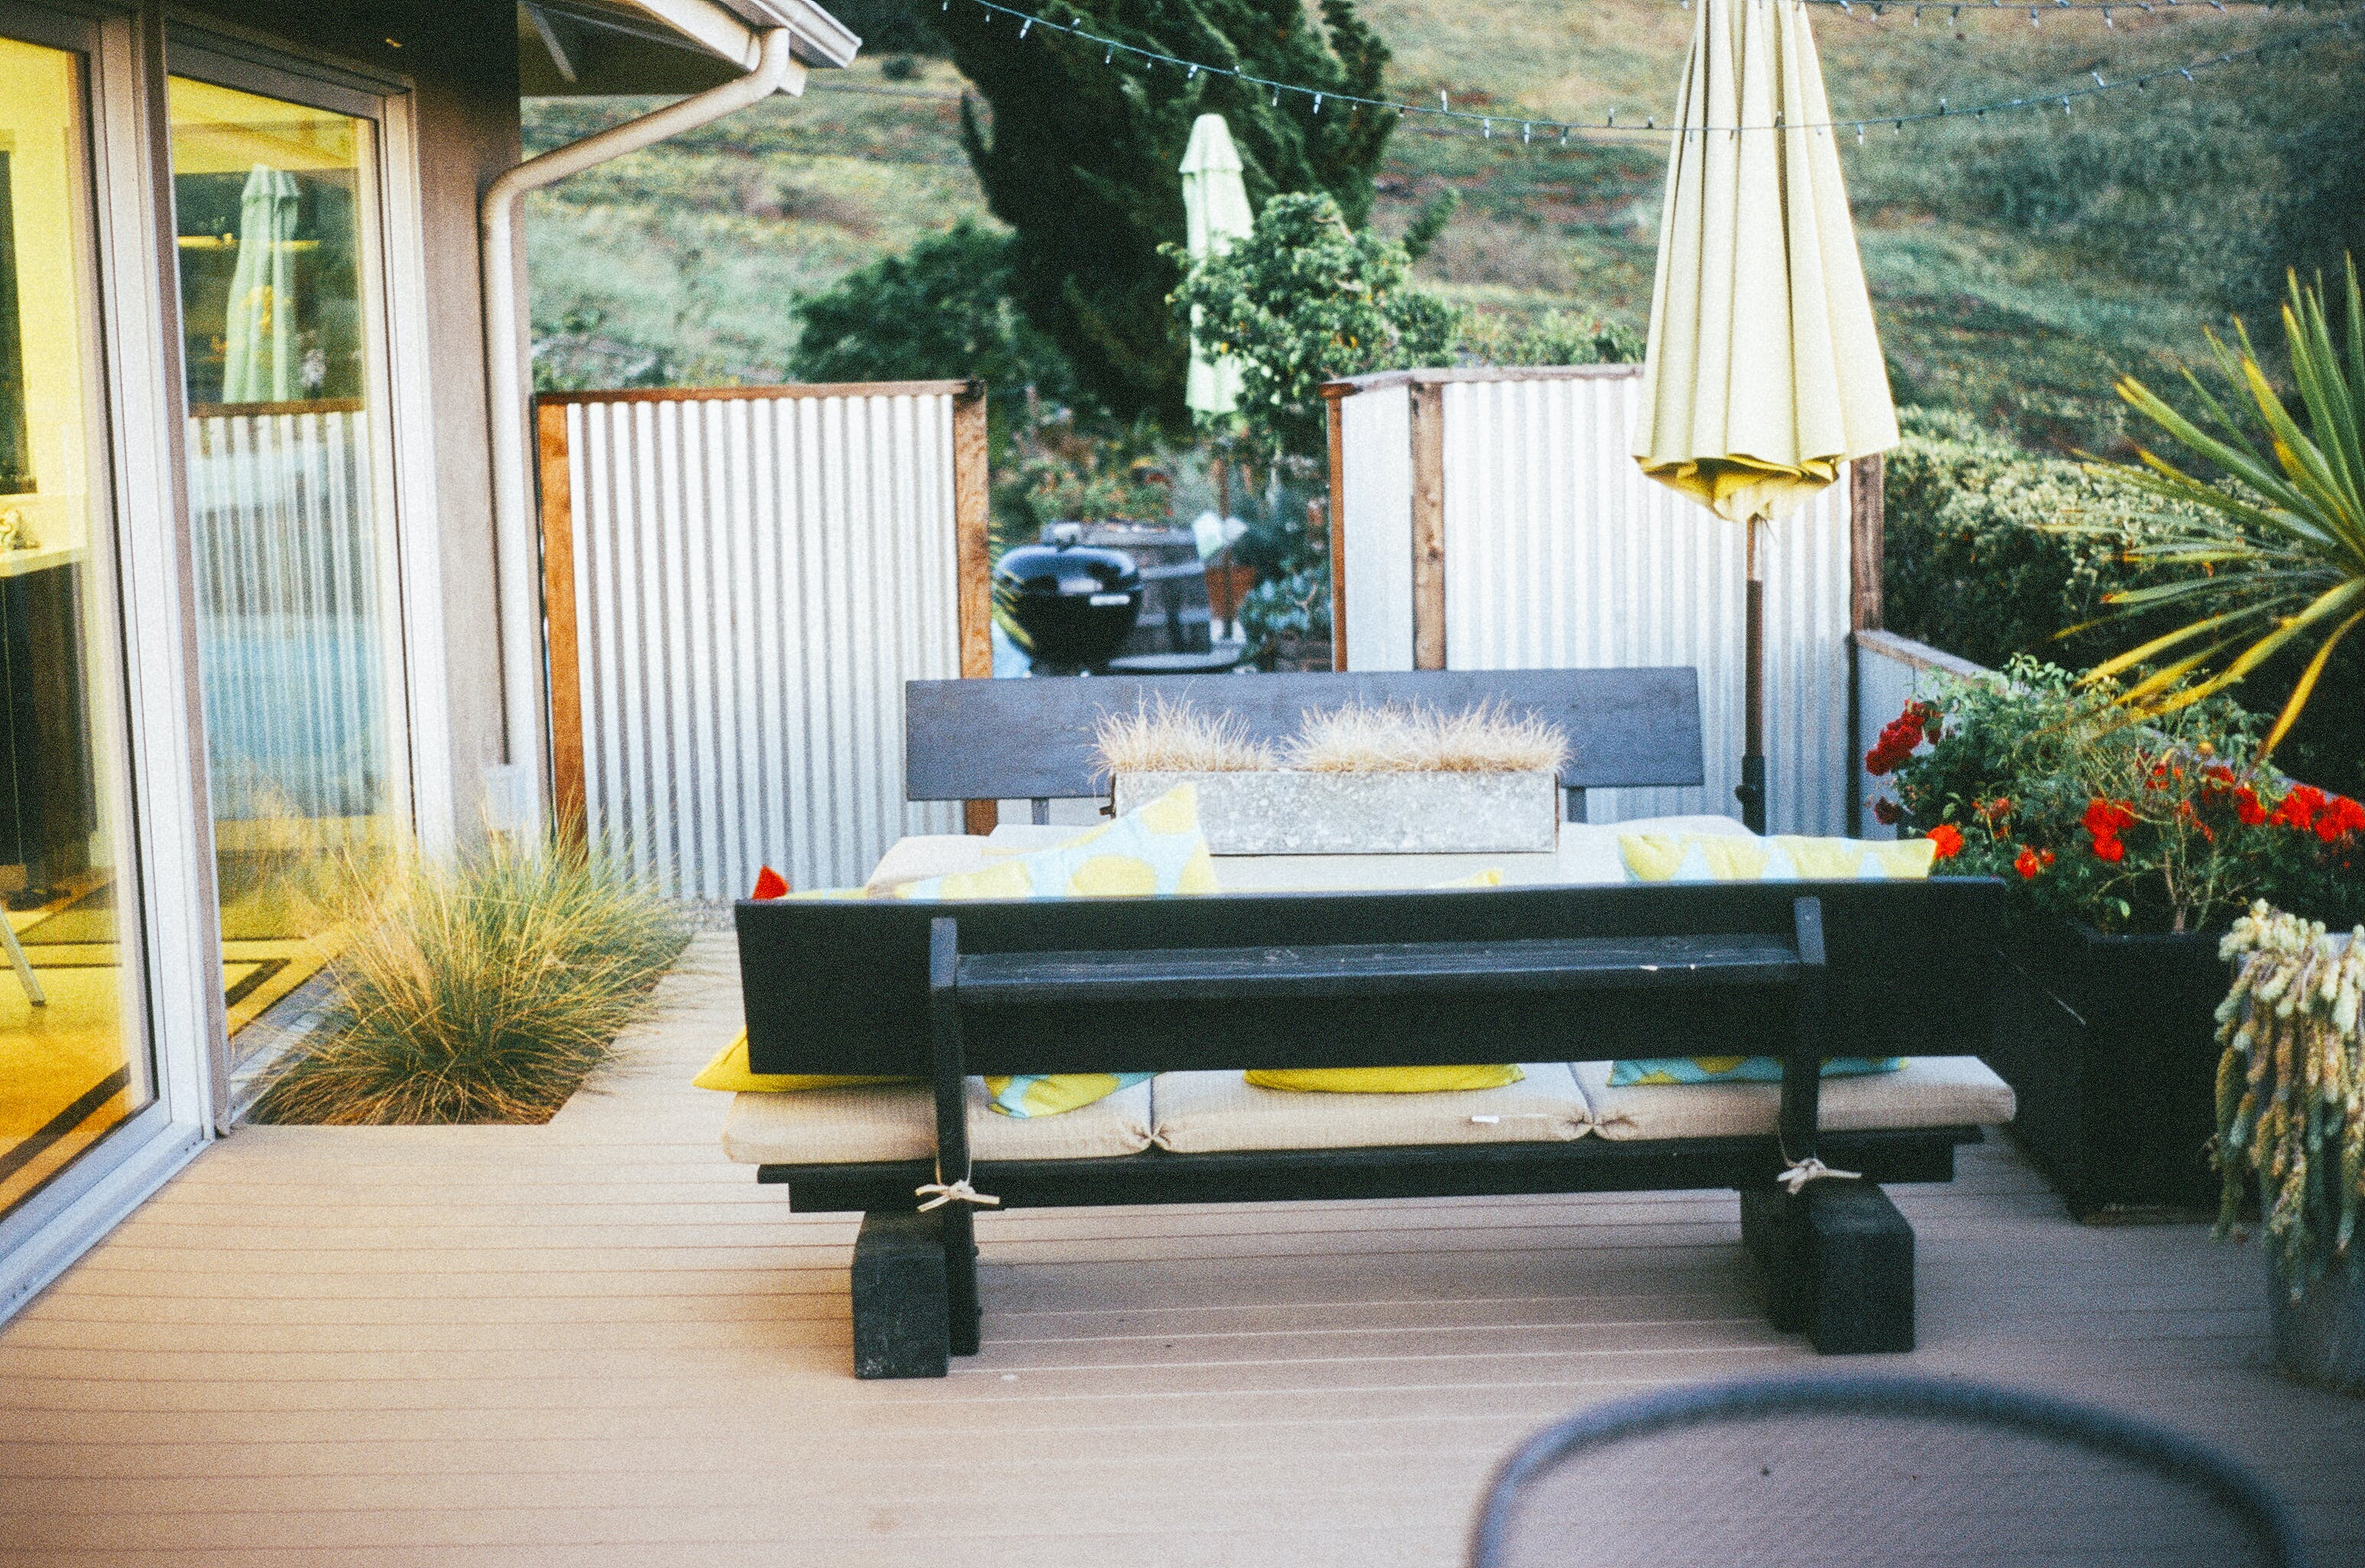 Black-and-beige Wooden 3-piece Patio Set Outside Near House